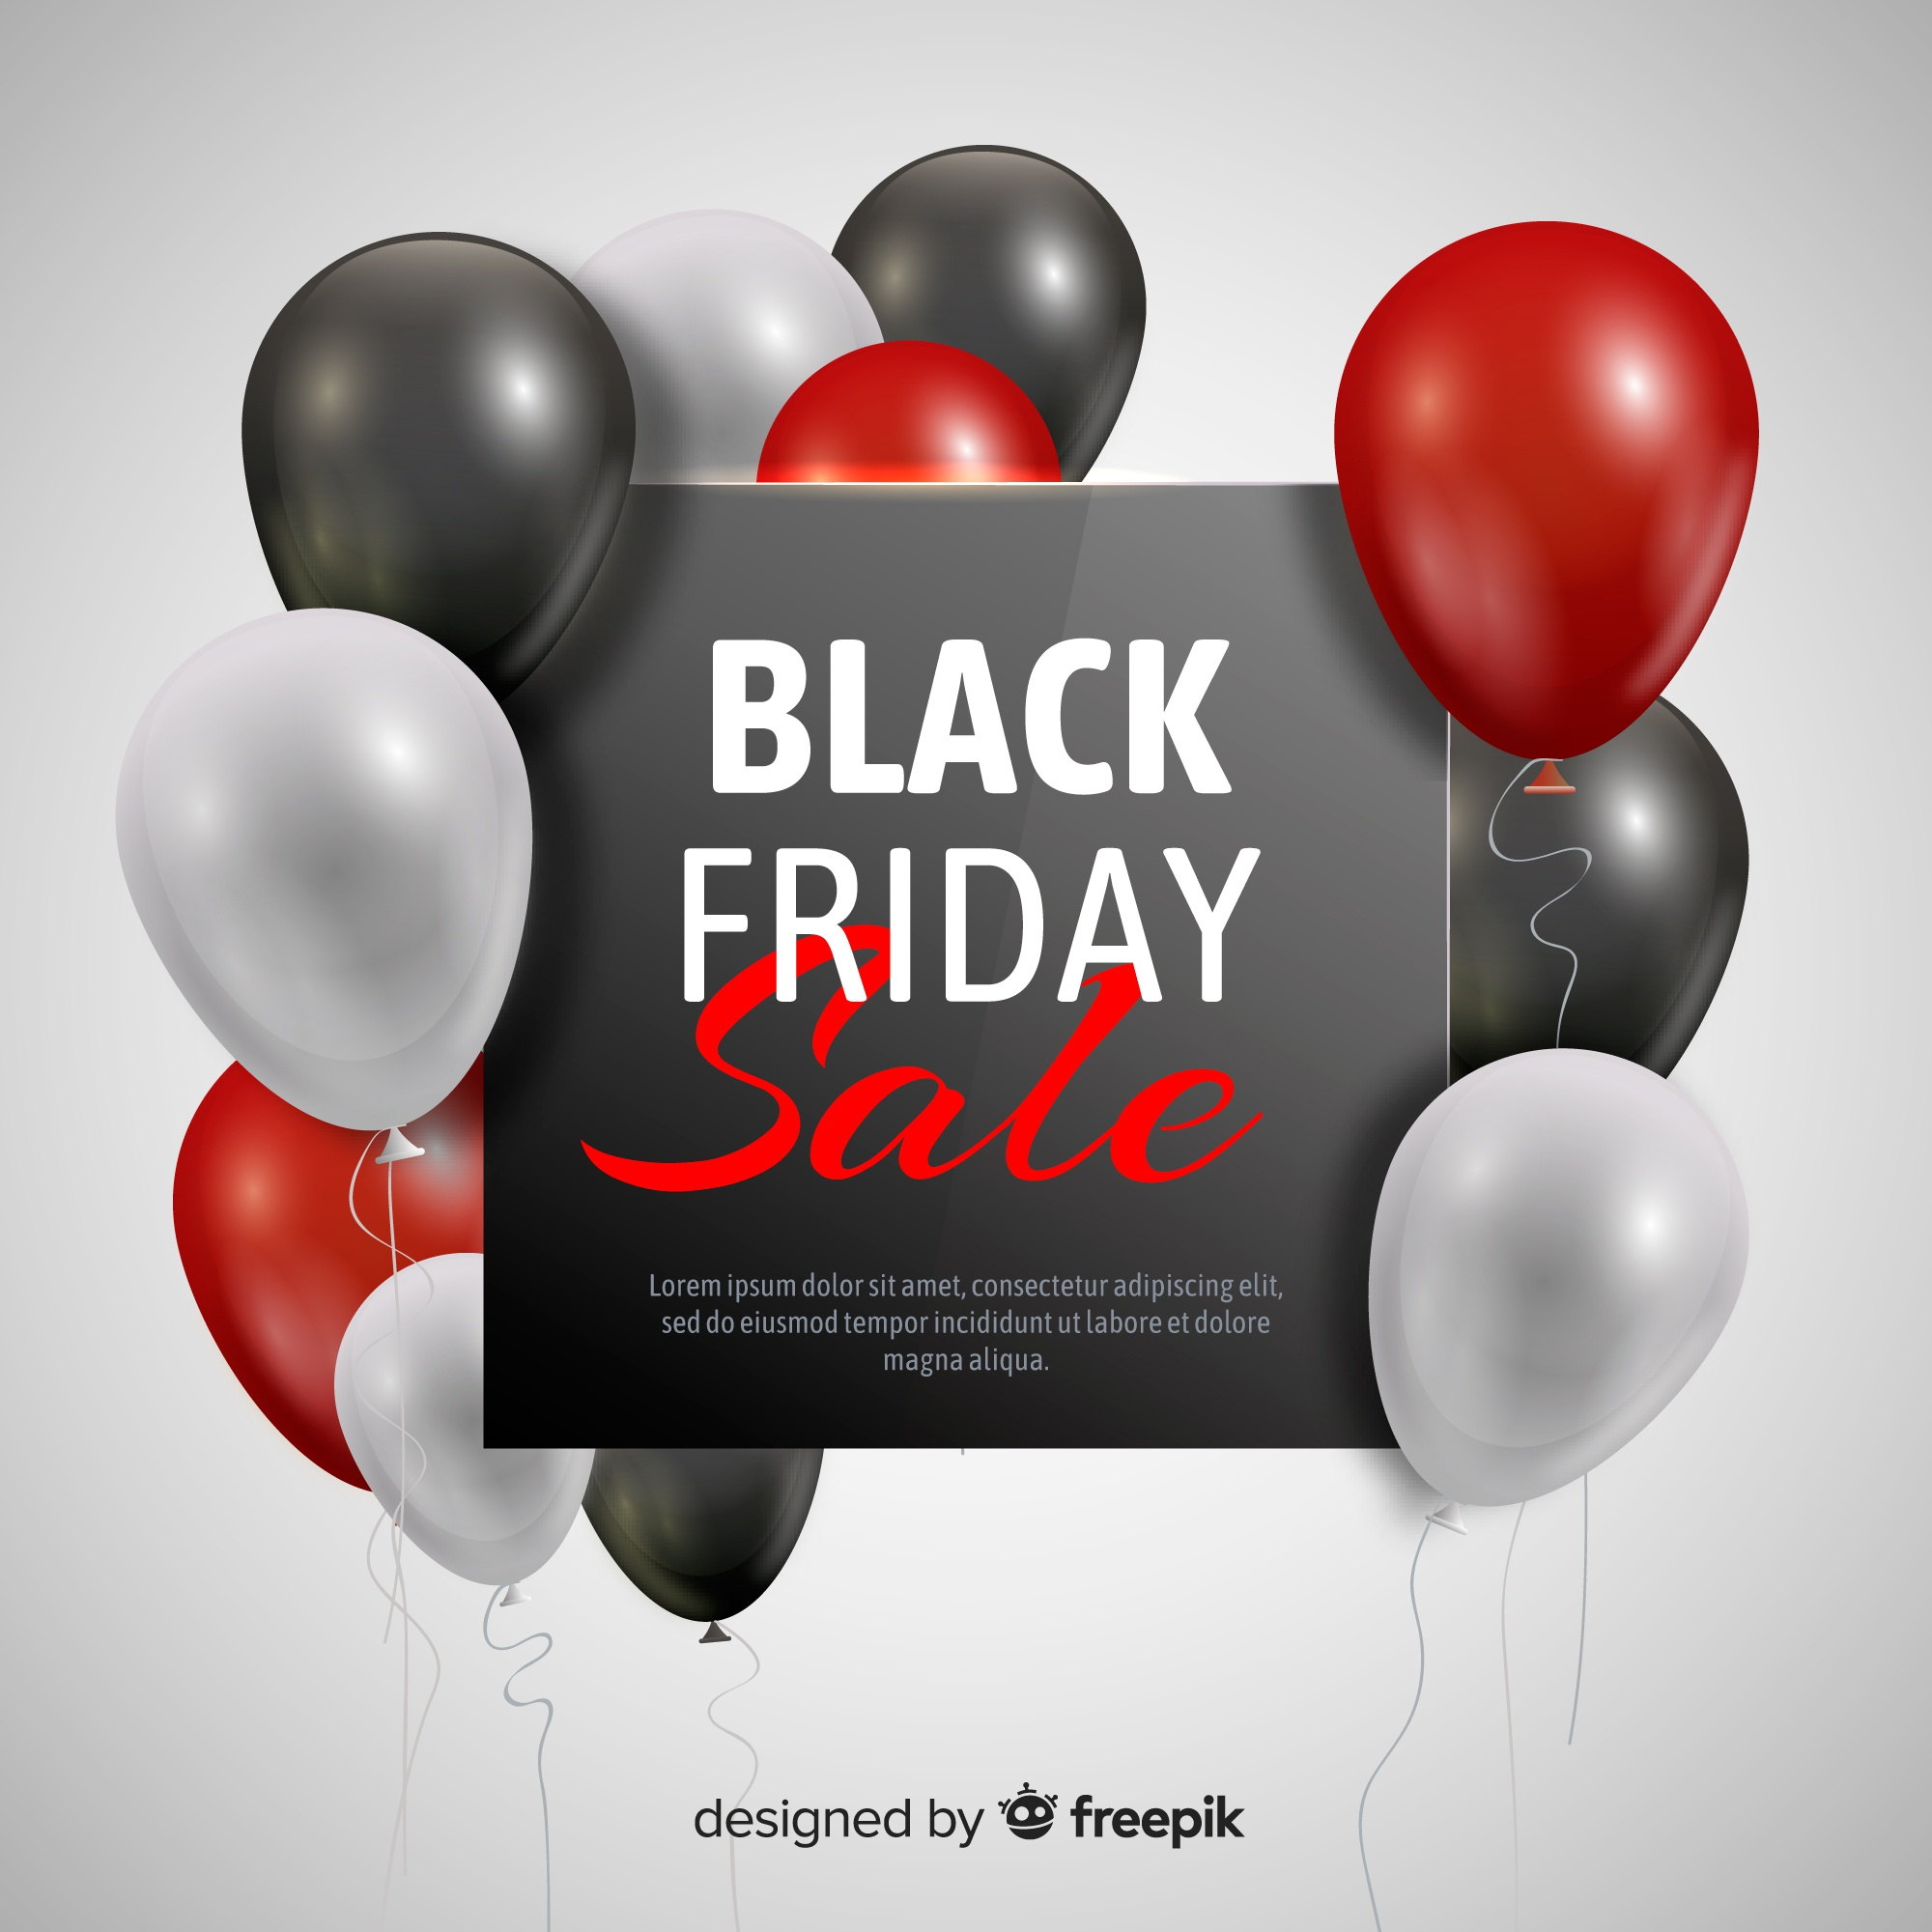 Black friday balloon sale background in black and red